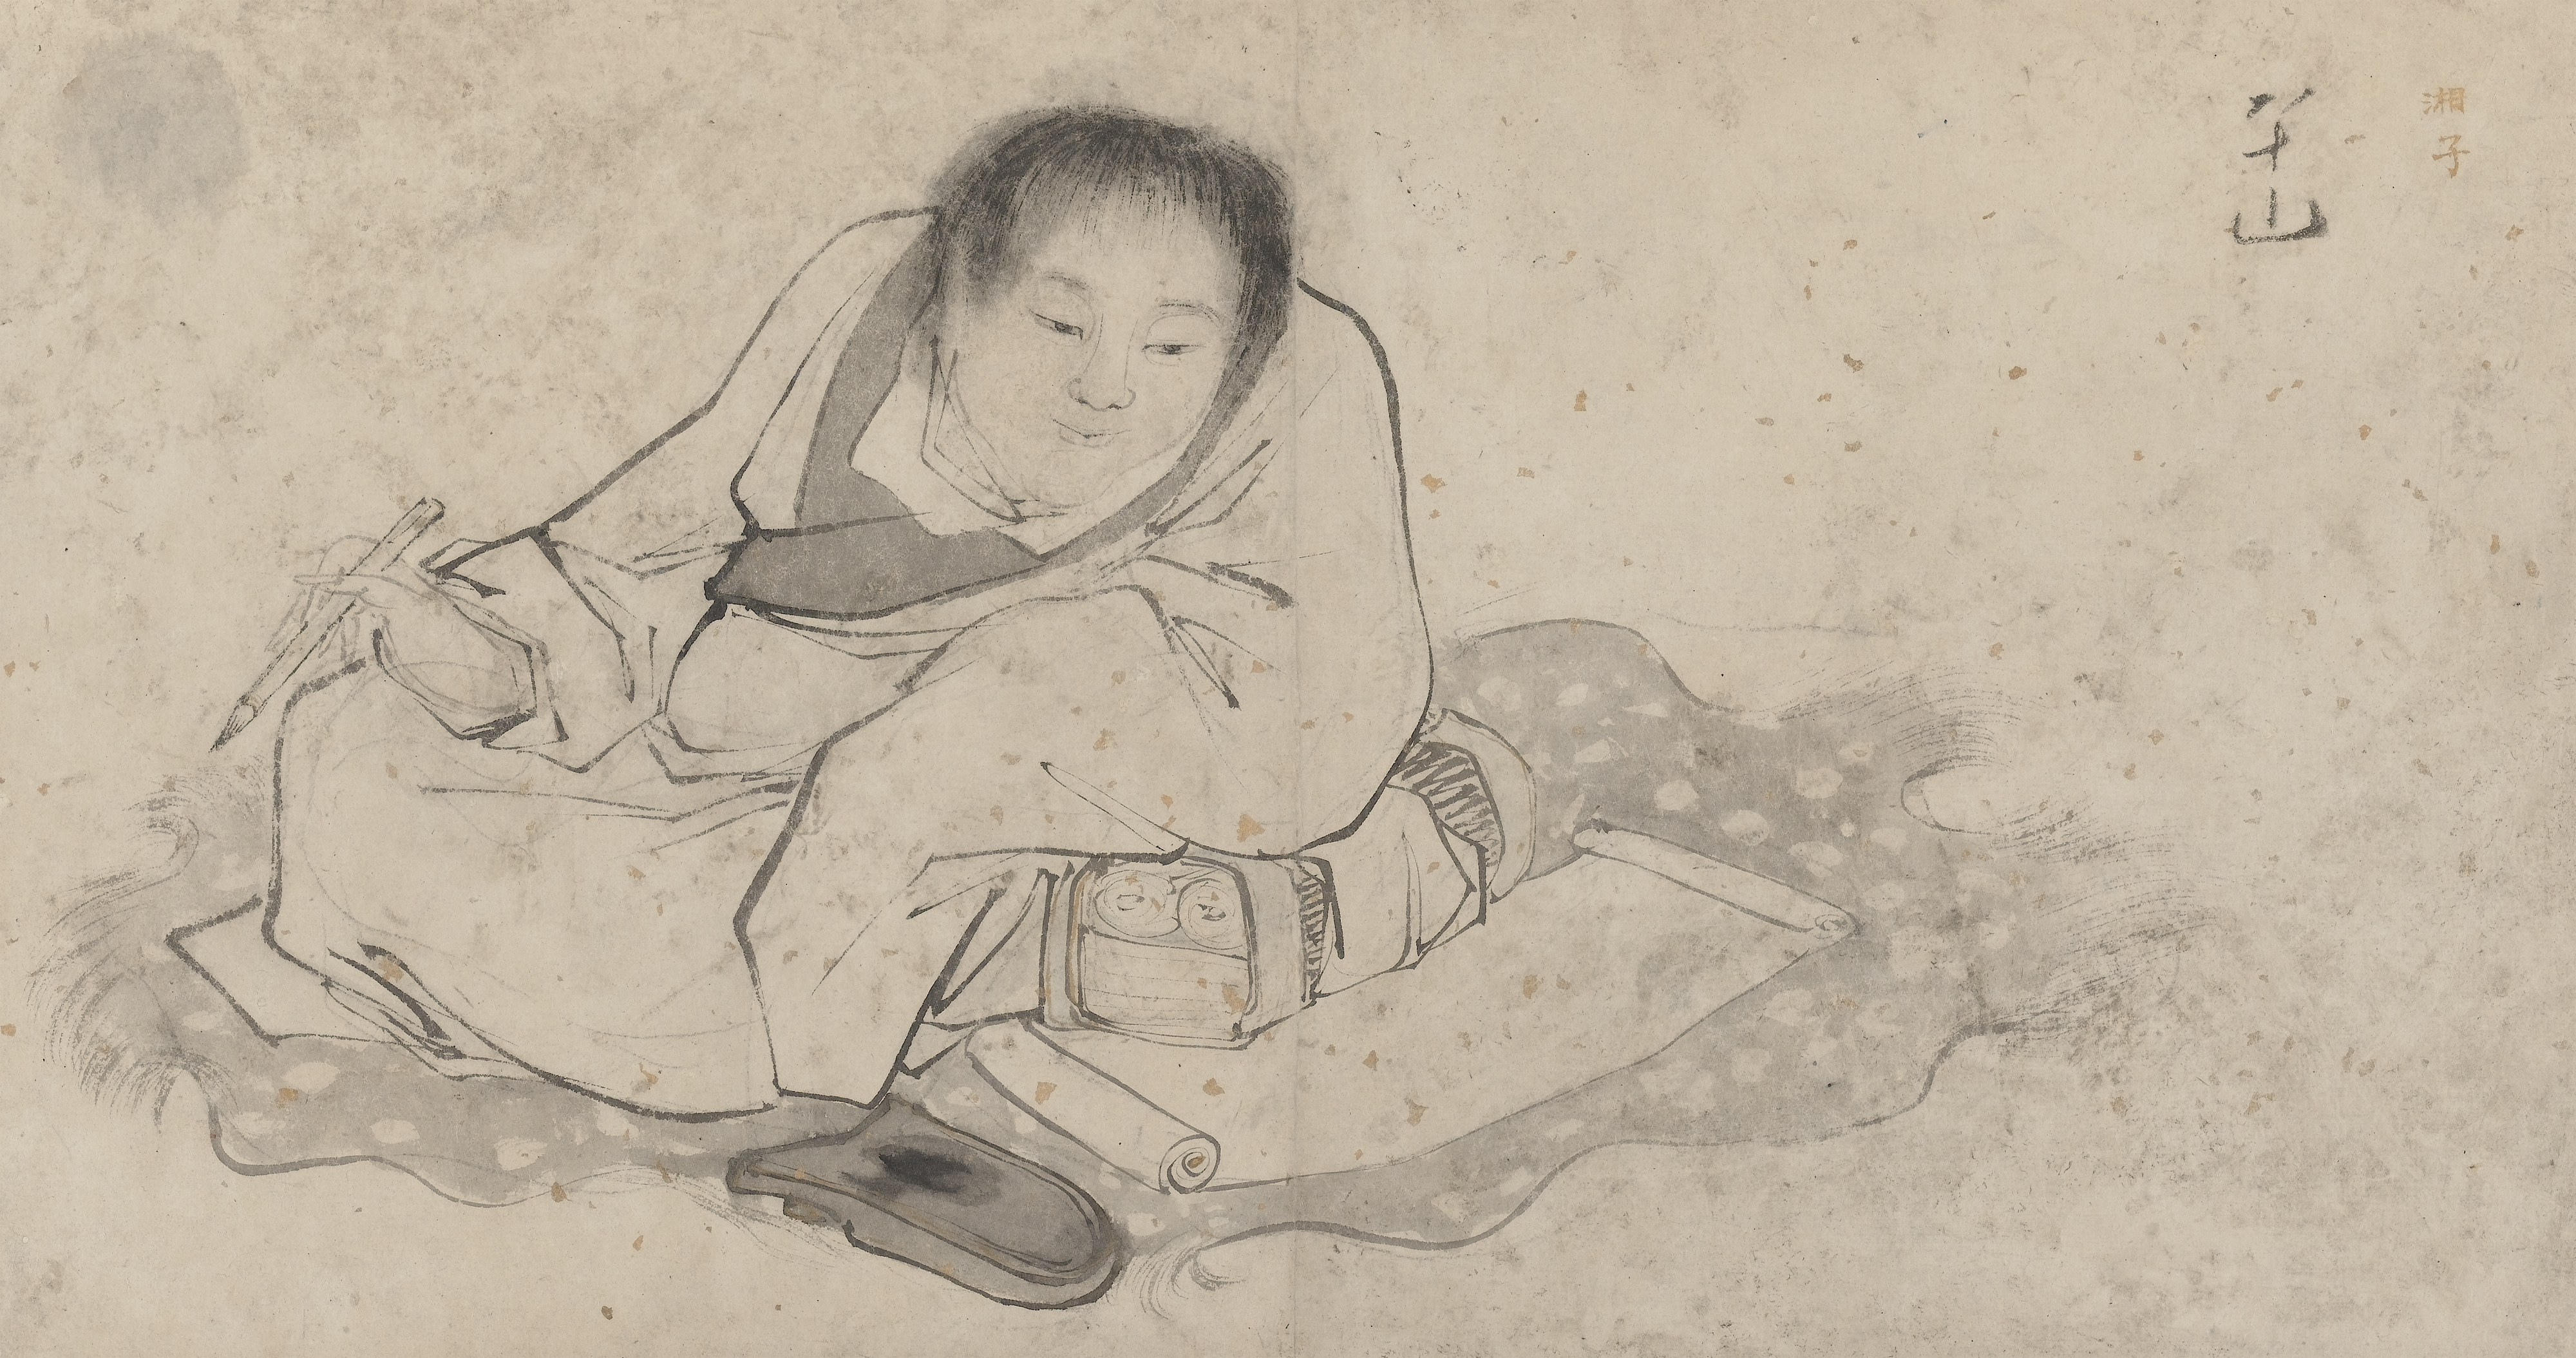 daodejing characterize early daoist teachers Early daoism, as articulated in the daodejing and the zhuangzi, indirectly addresses environmental issues by intimating a non-reductive naturalistic ethics calling on humans to be open and.